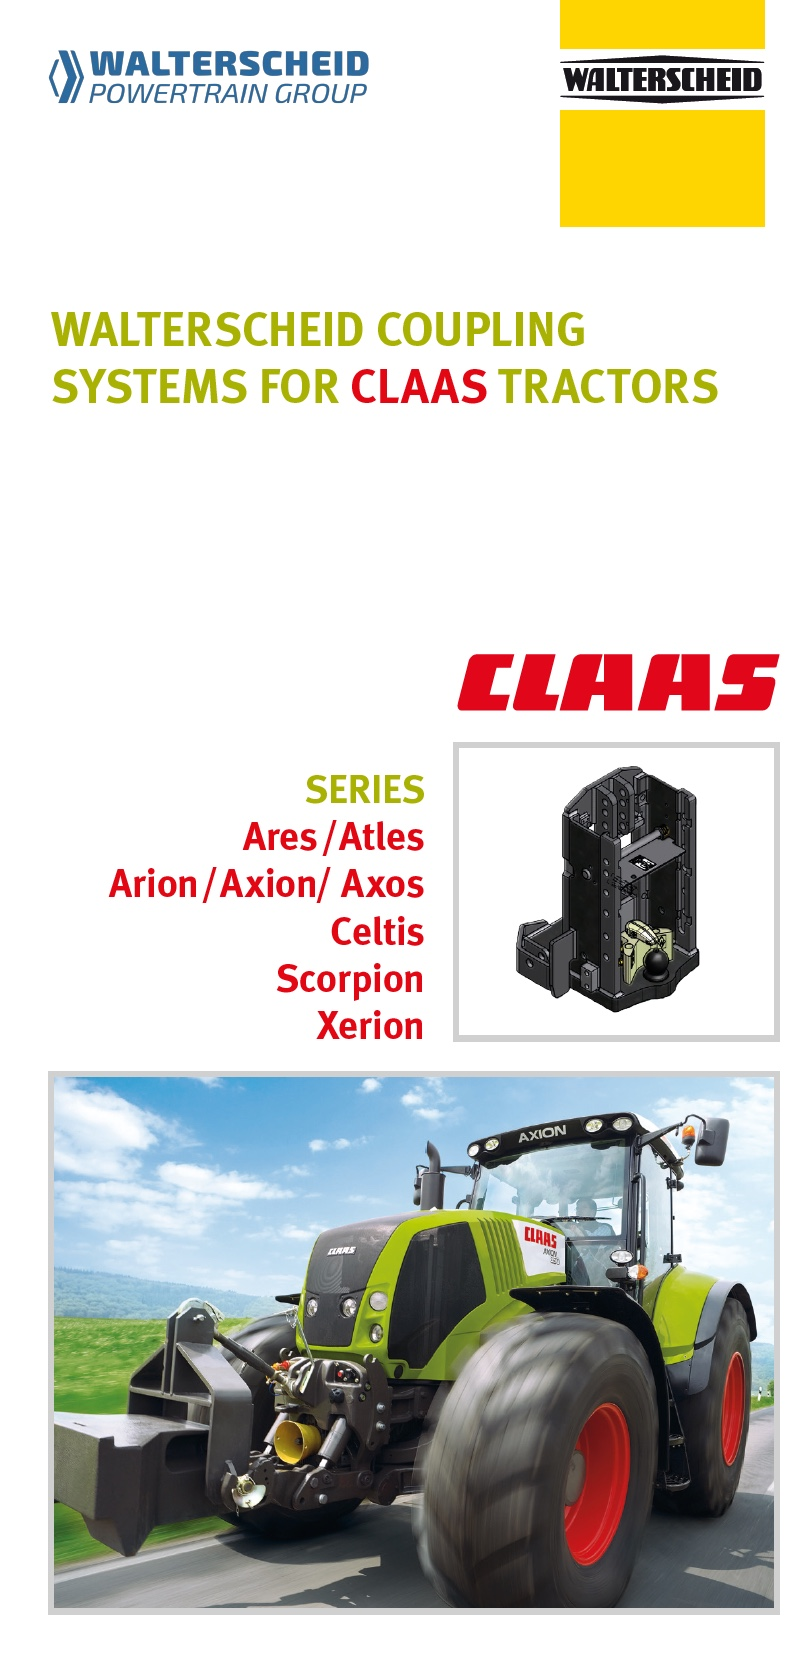 Coupling systems for Claas tractors